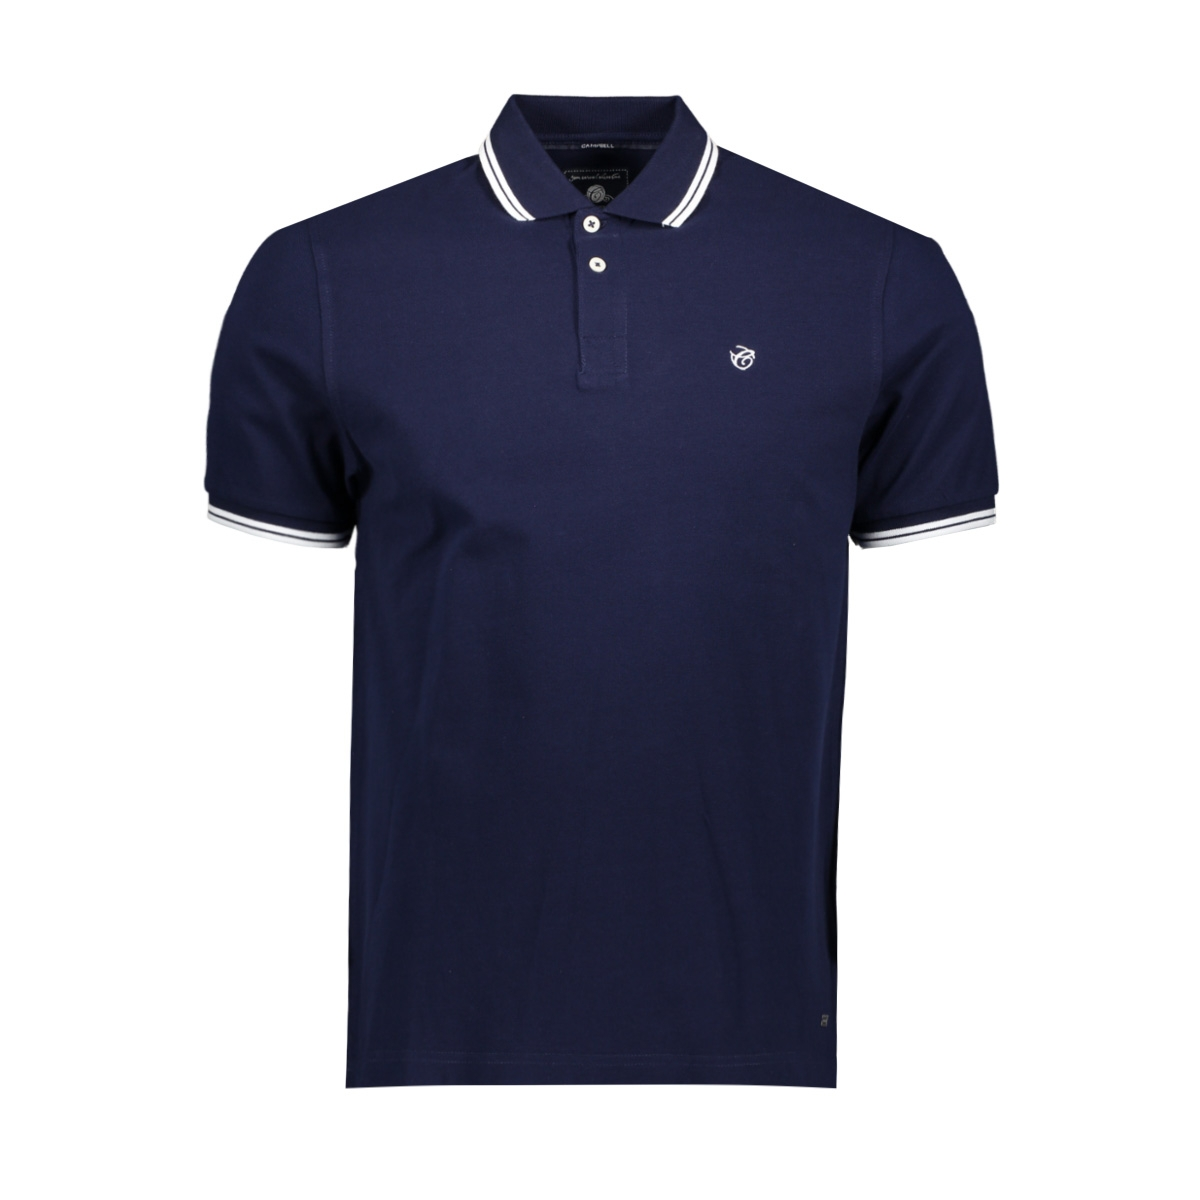 classic polo km 052936 campbell polo 004 donkerblauw uni